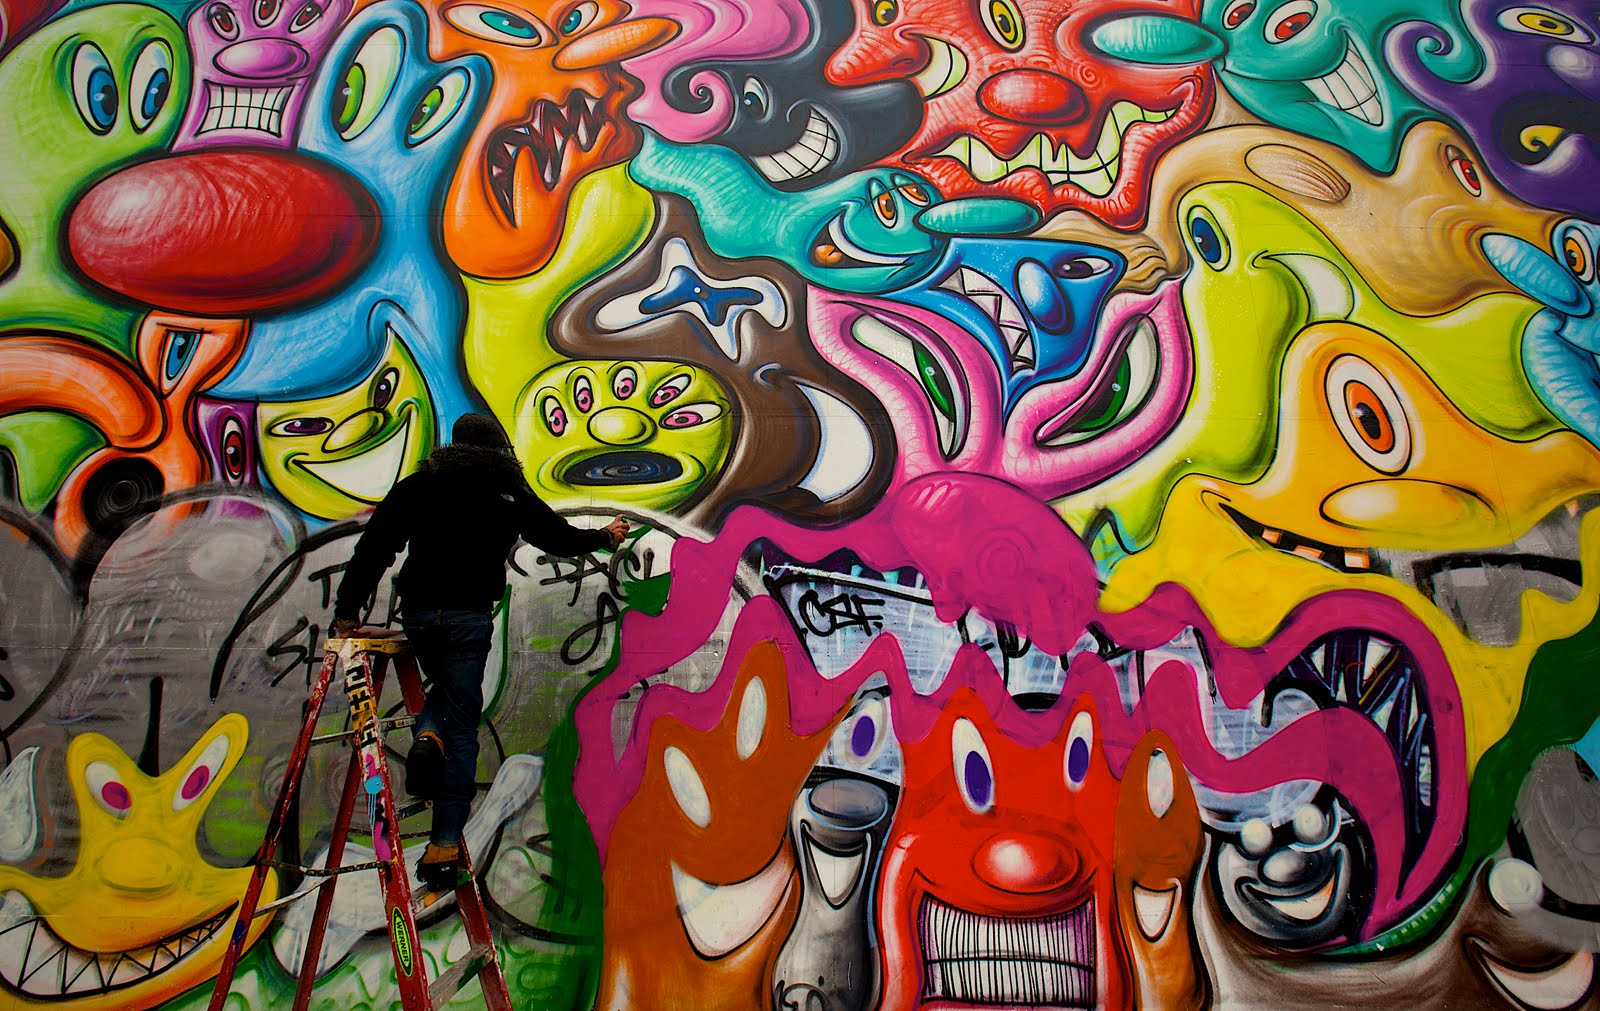 graffiti art